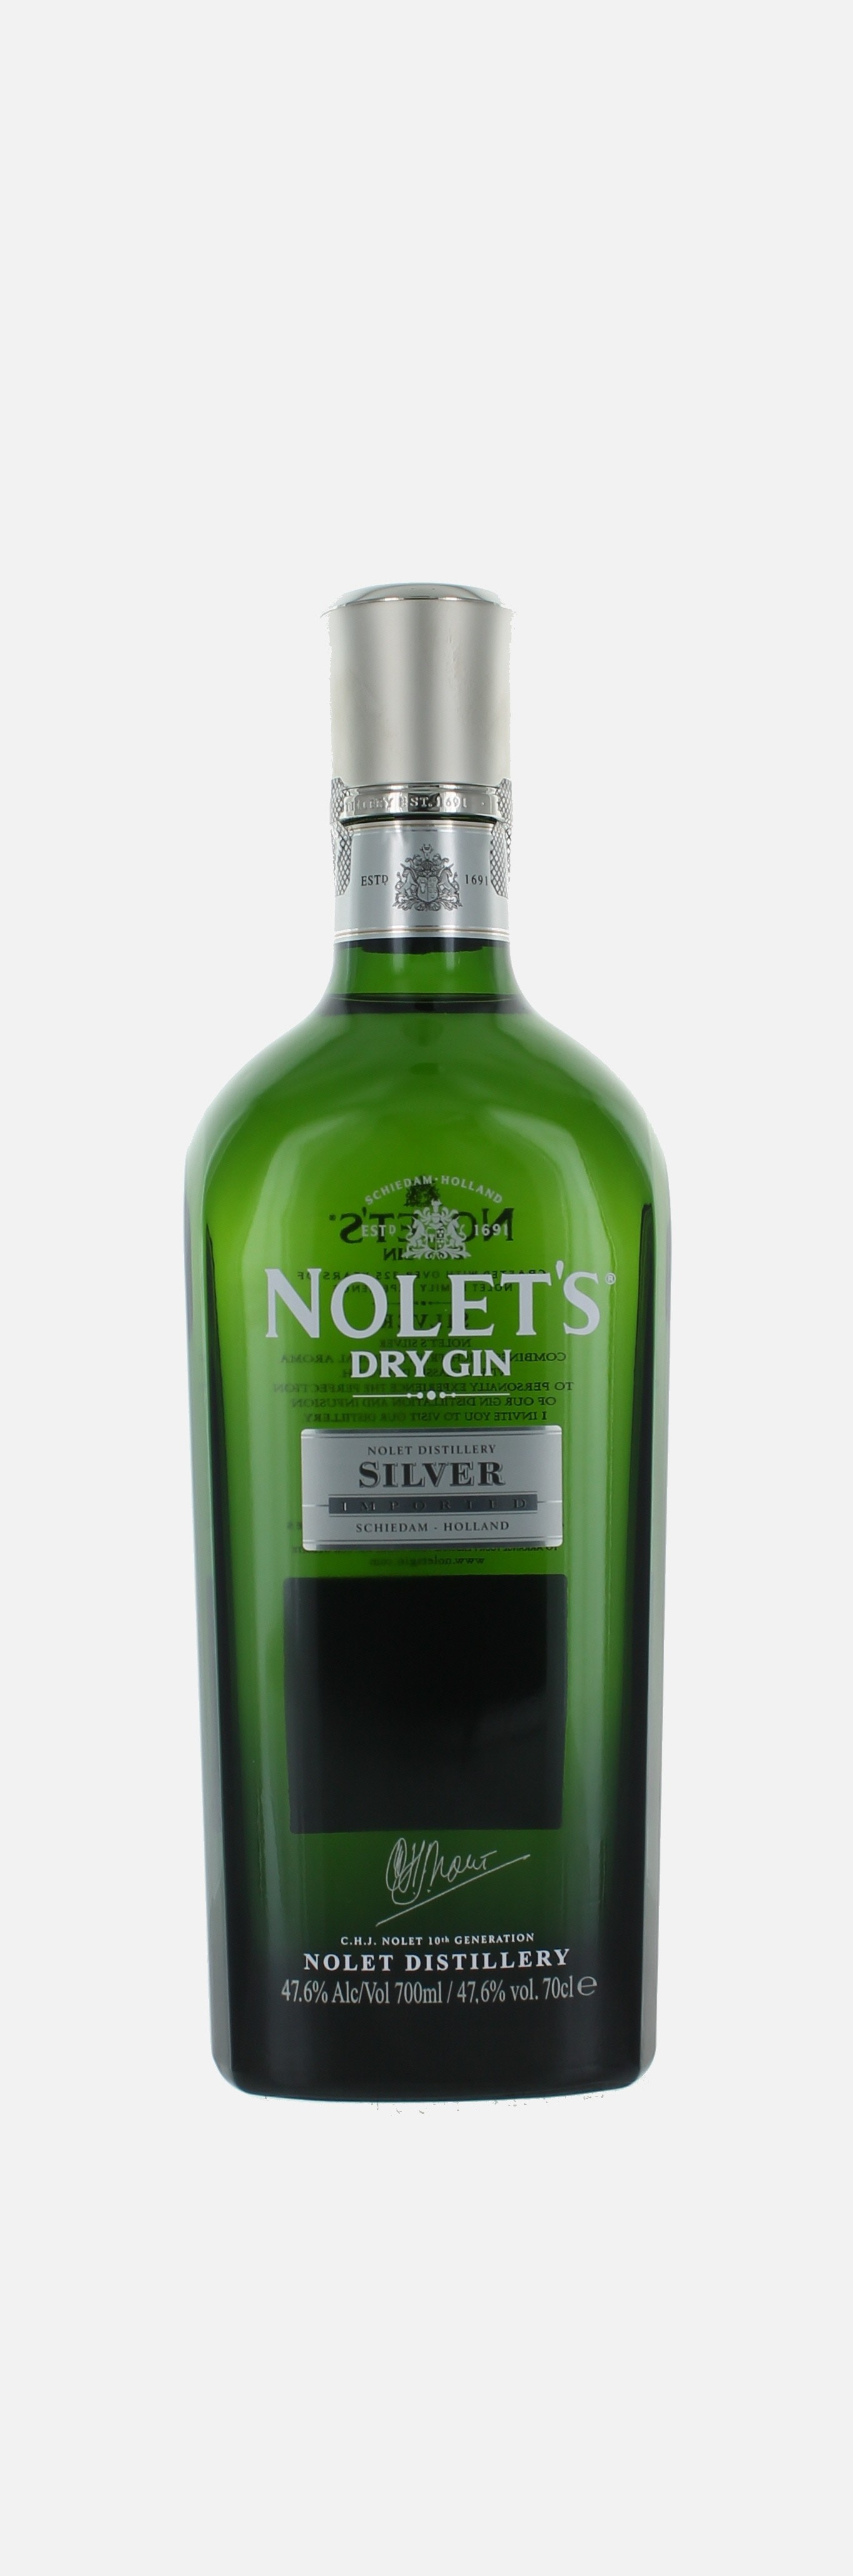 Nolet's Gin, Silver dry